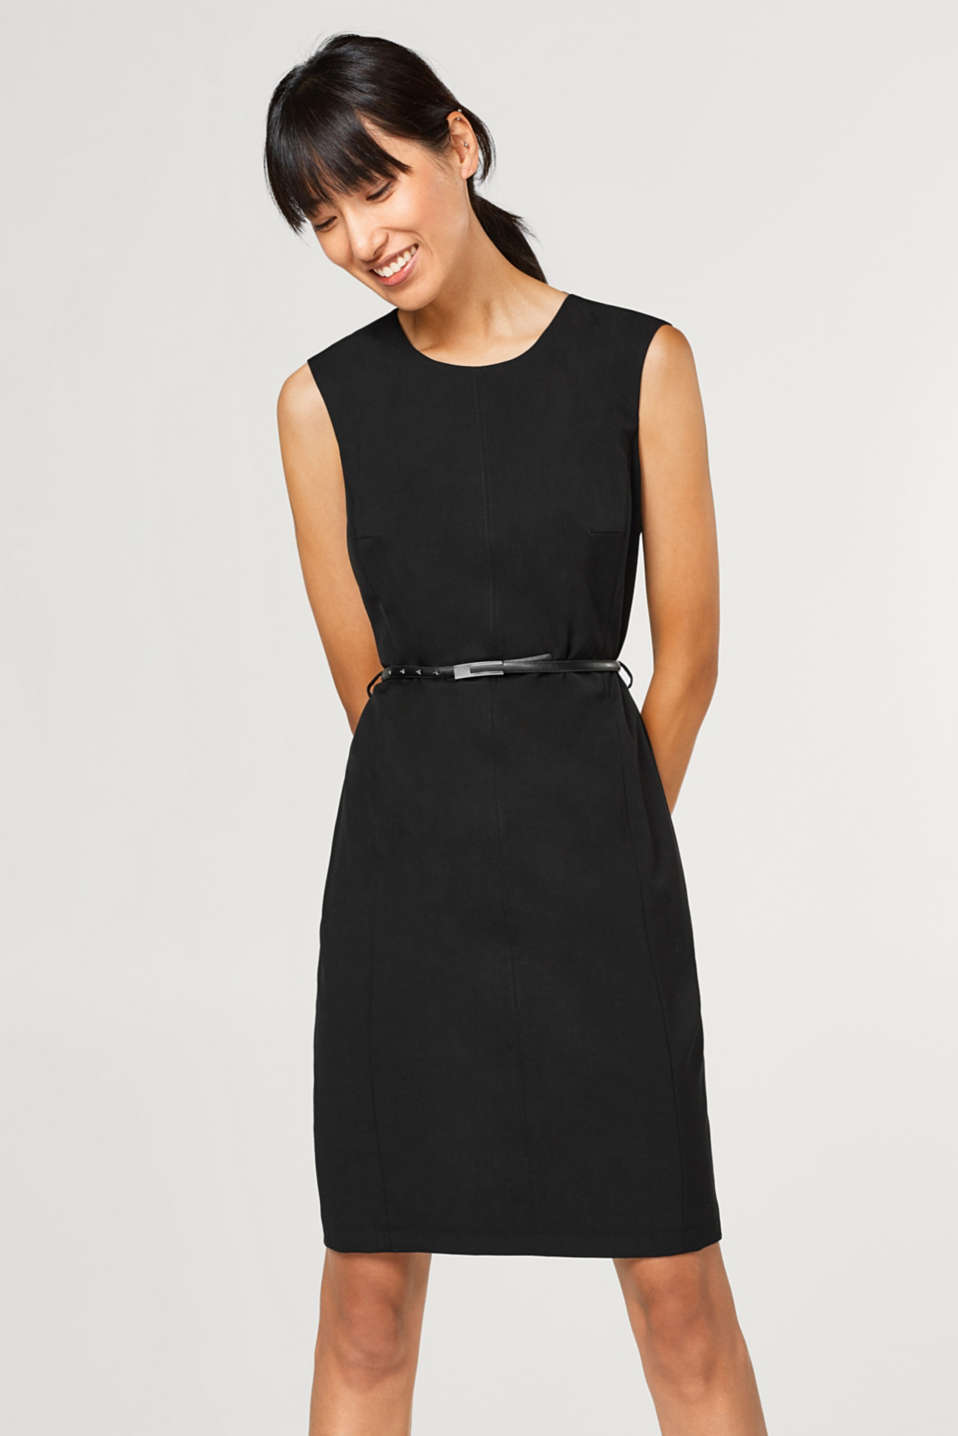 Esprit - Fitted stretch dress + belt